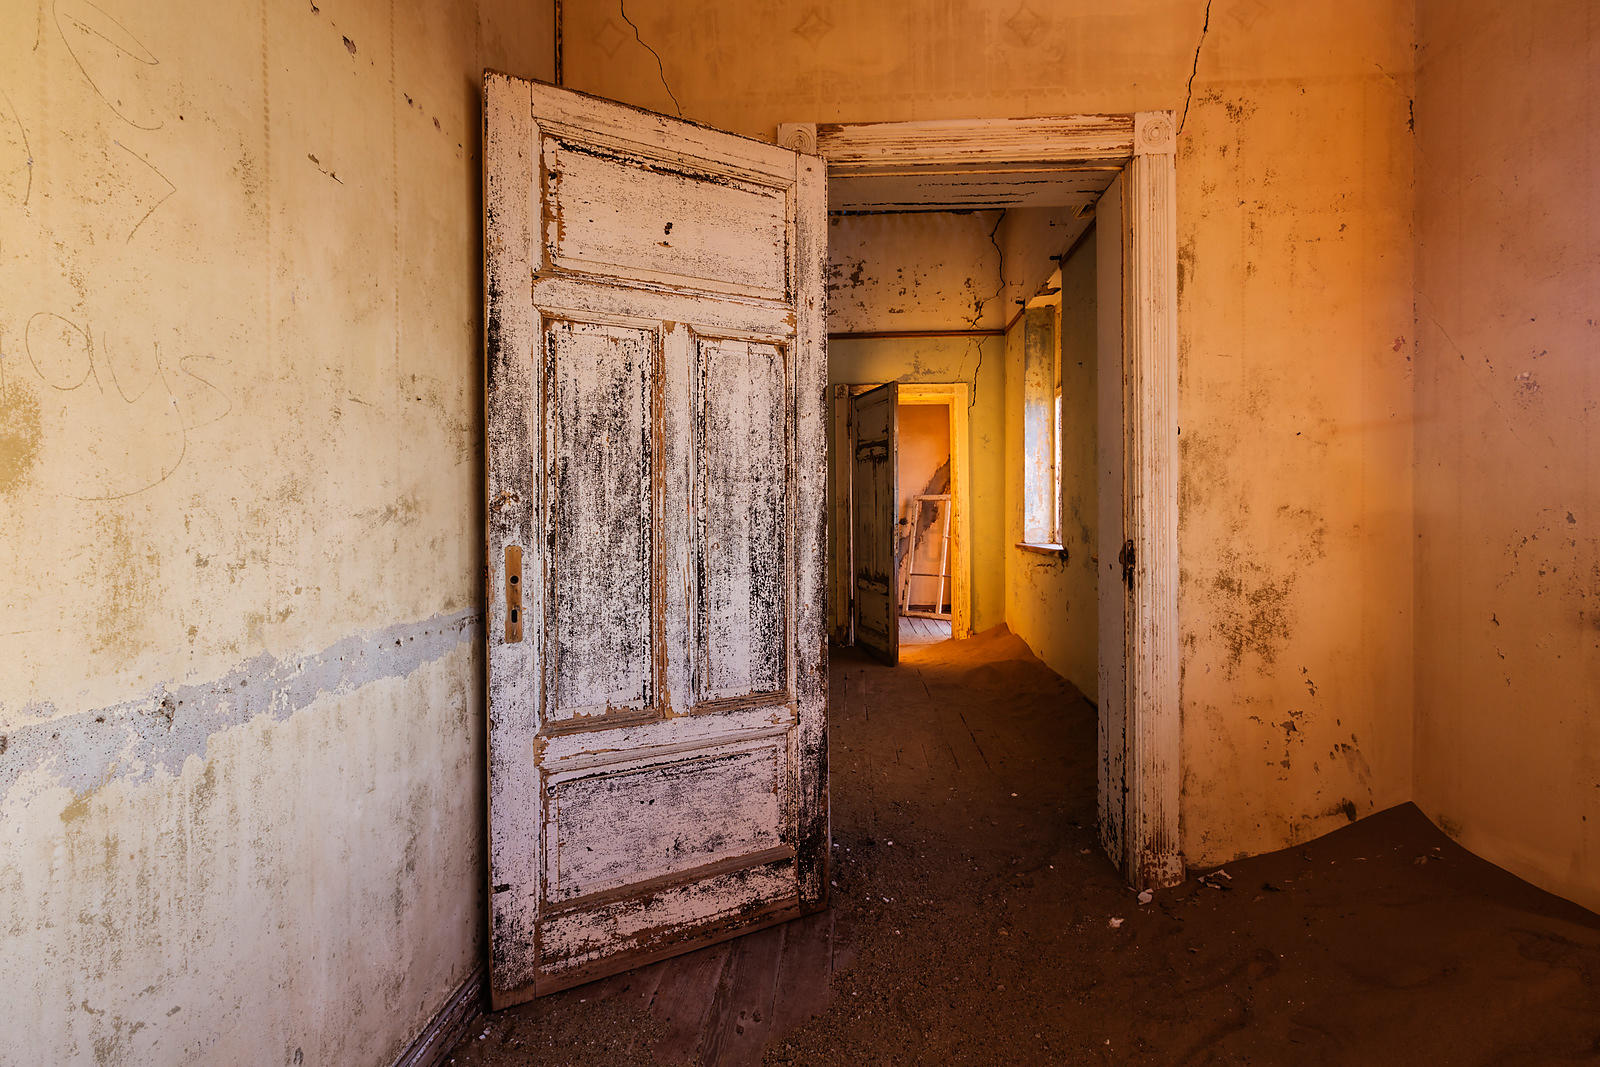 Interior of Abandoned House at Sunset